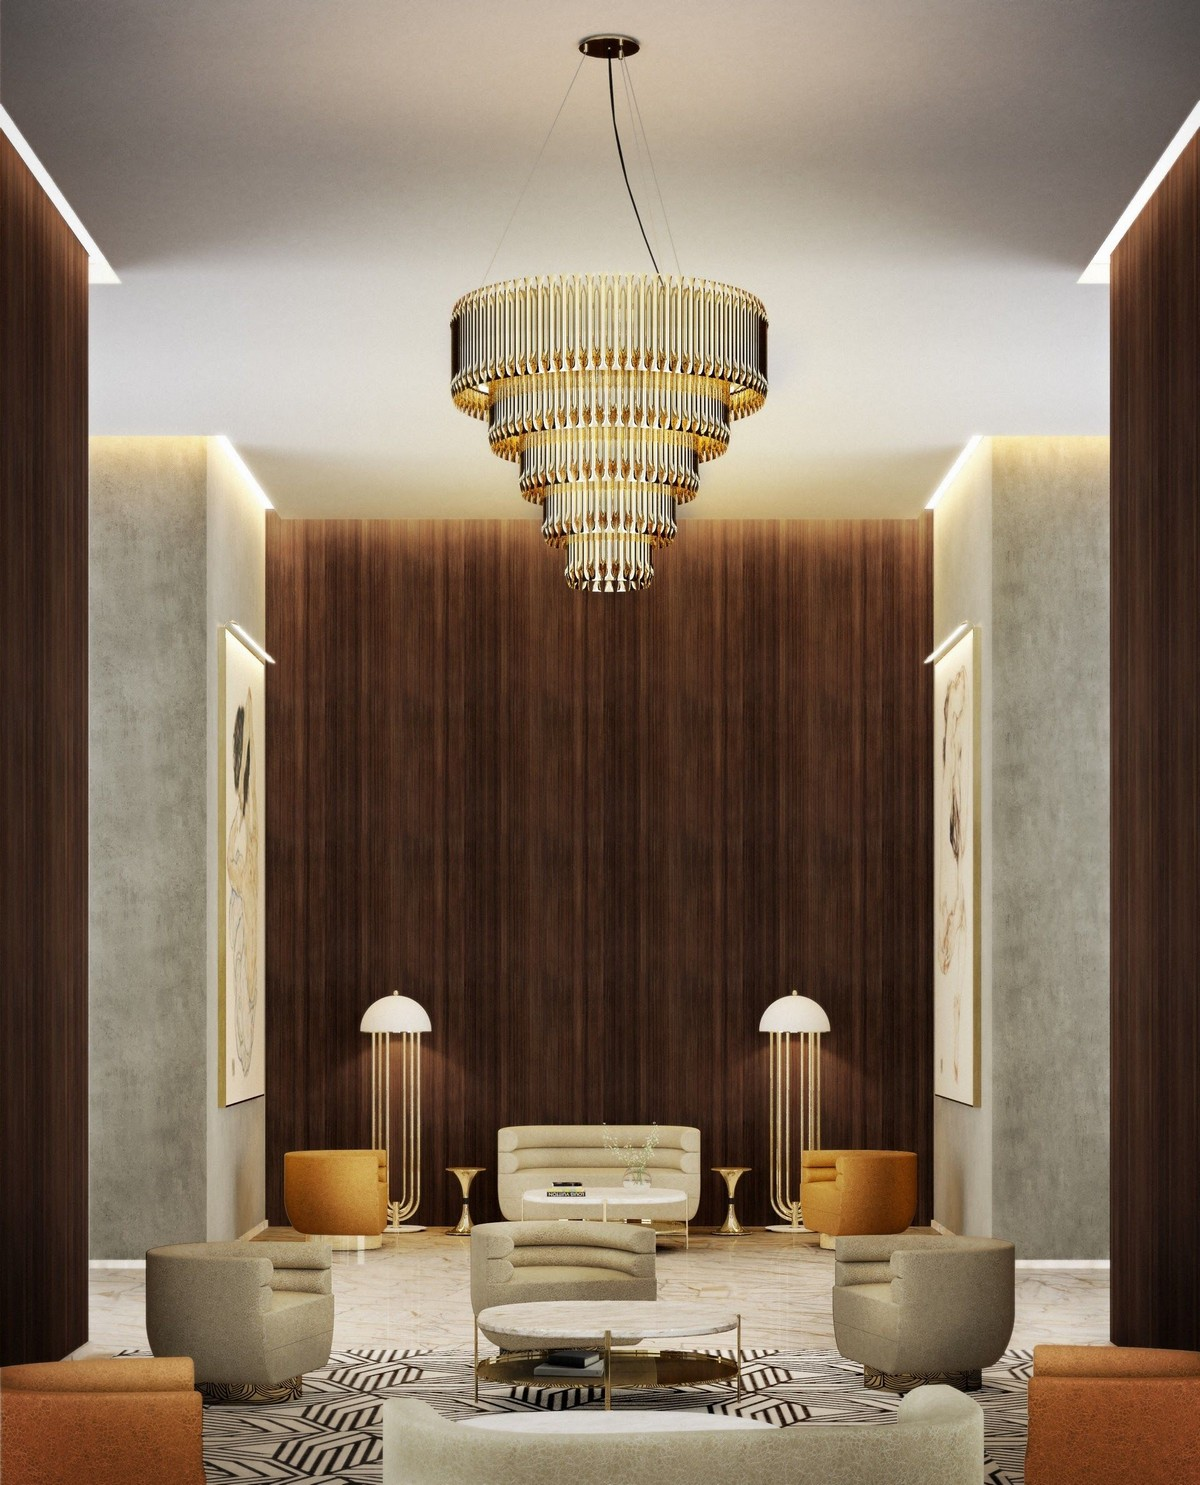 Exclusive Lighting Designs You Will Love (Part III) exclusive lighting designs Exclusive Lighting Designs You Will Love (Part III) matheny